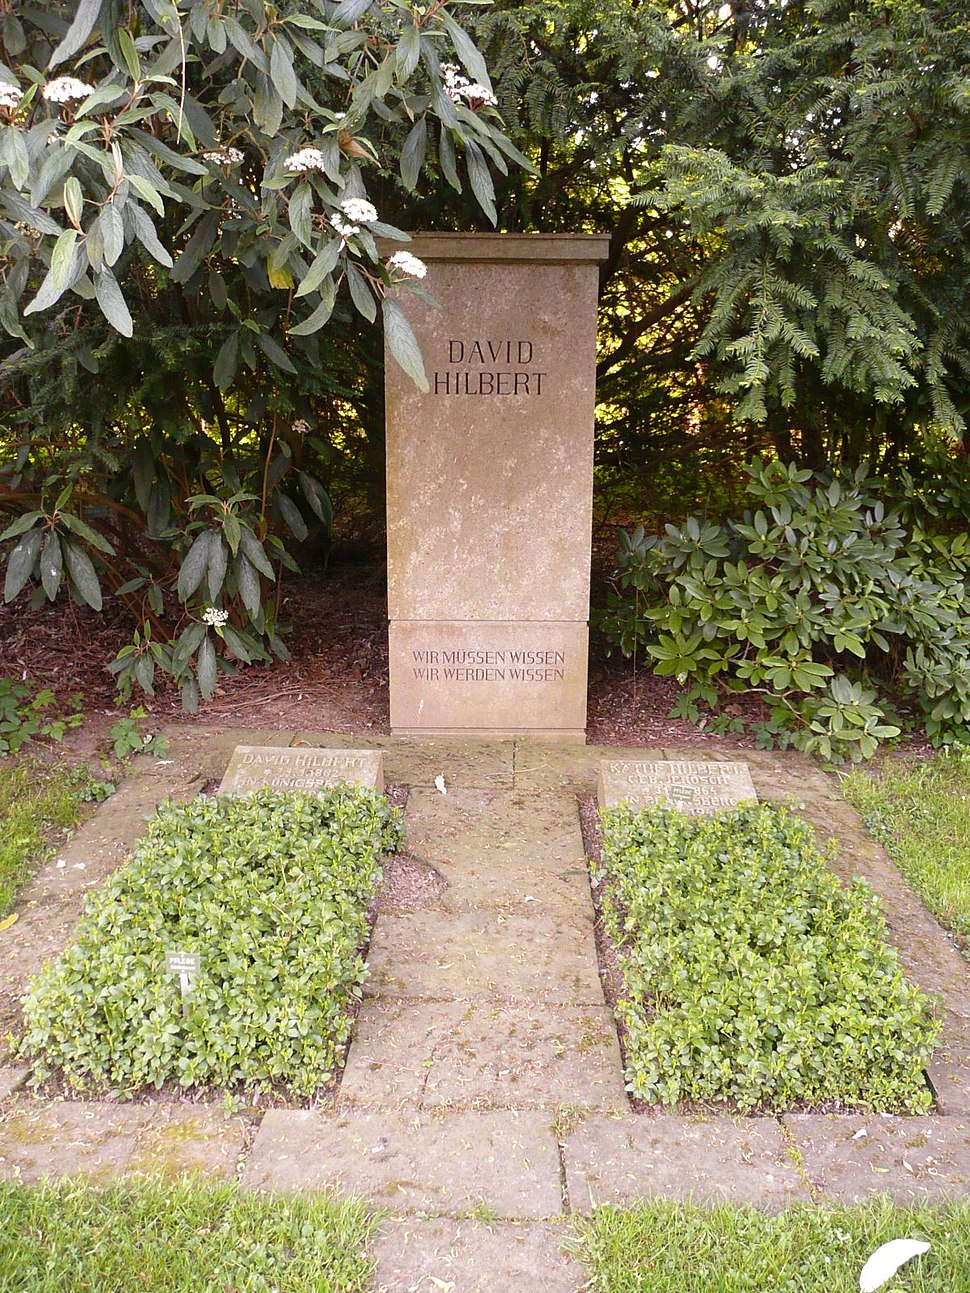 Göttingen Stadtfriedhof Grab David Hilbert